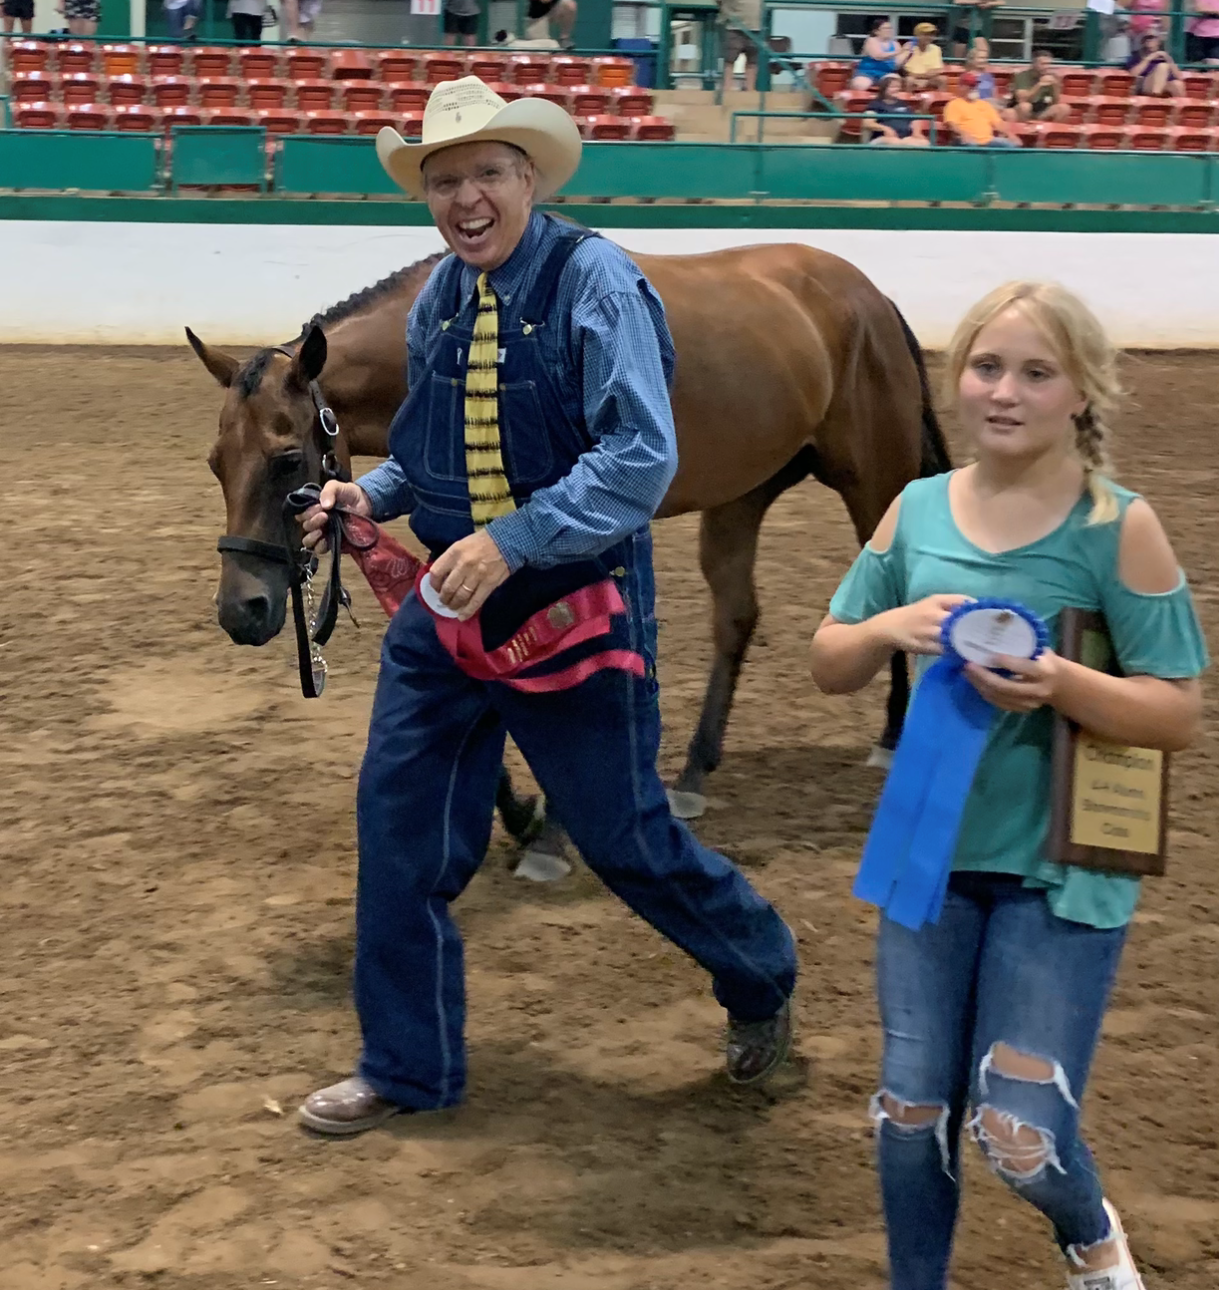 Girl holding award with man leading a horse in background